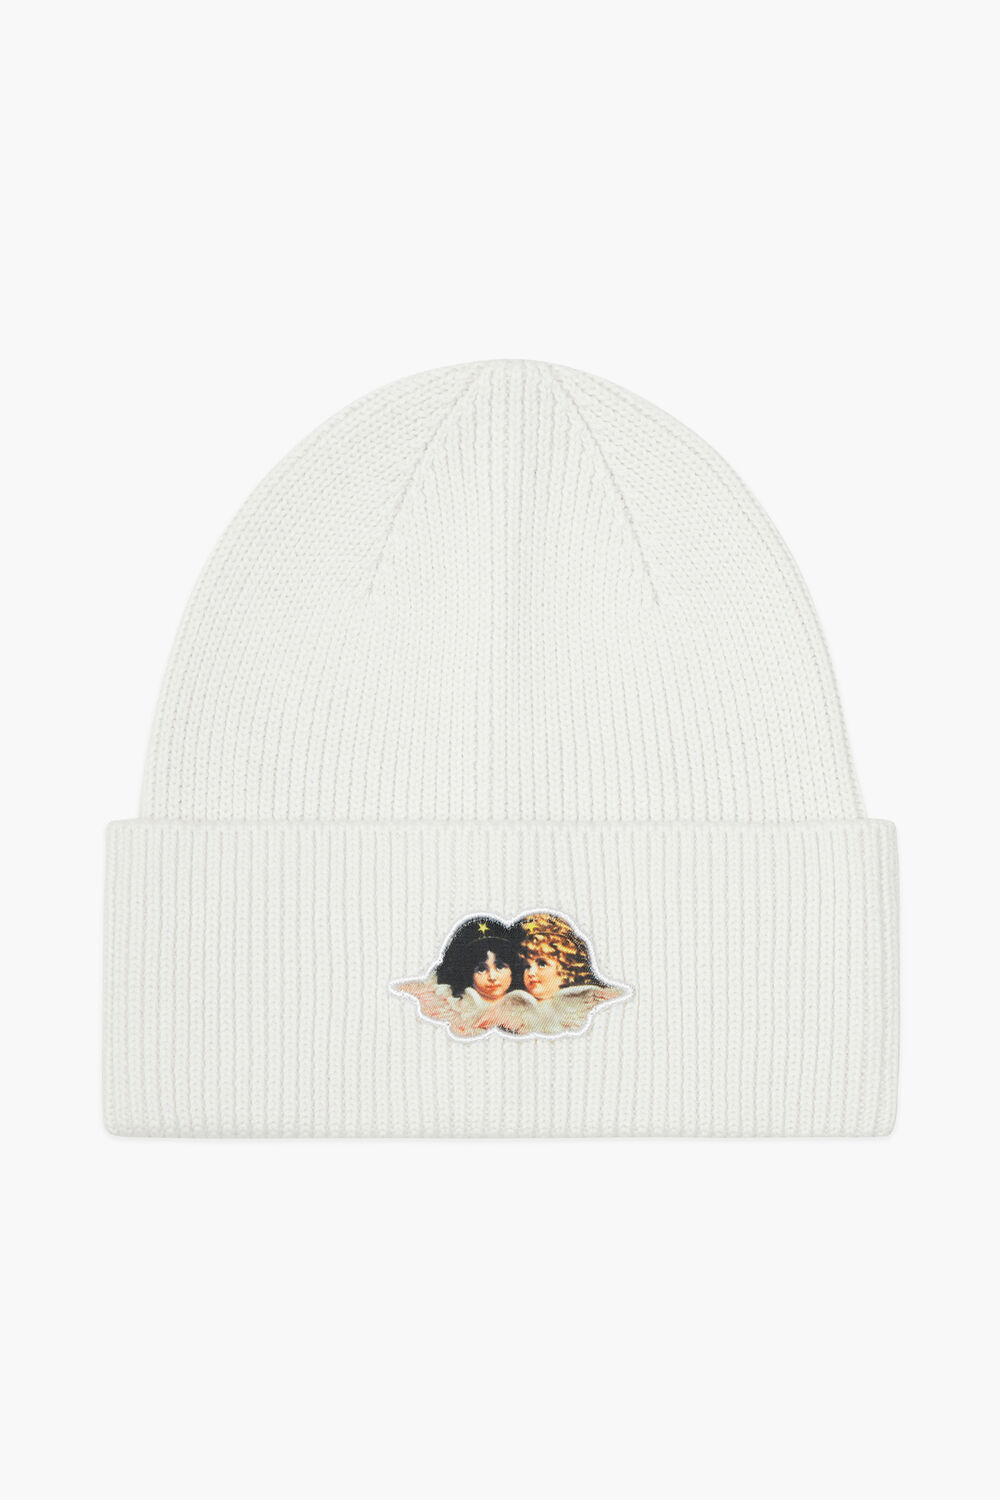 Icon Angels Patch Beanie White